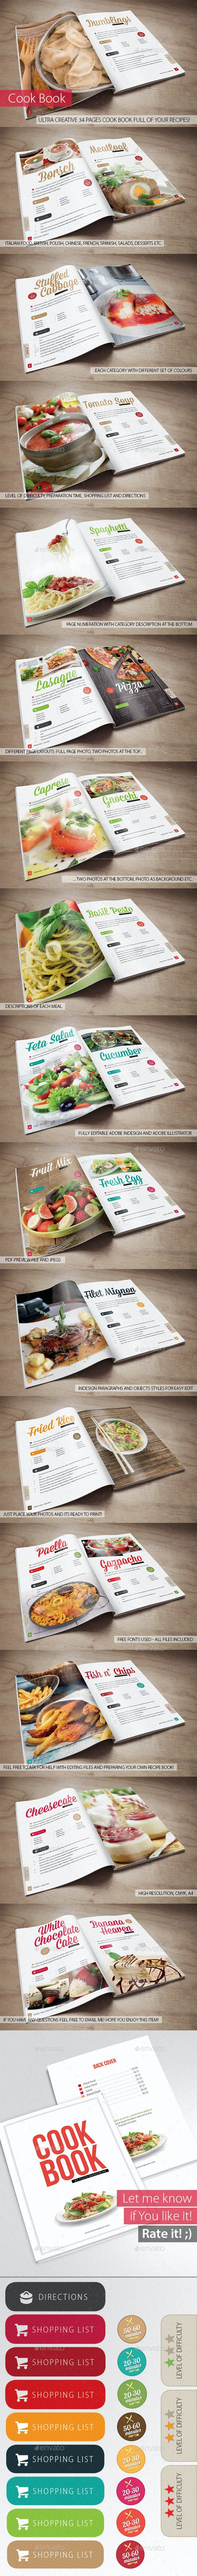 Cook Book - Your Recipes - Brochures Print Templates